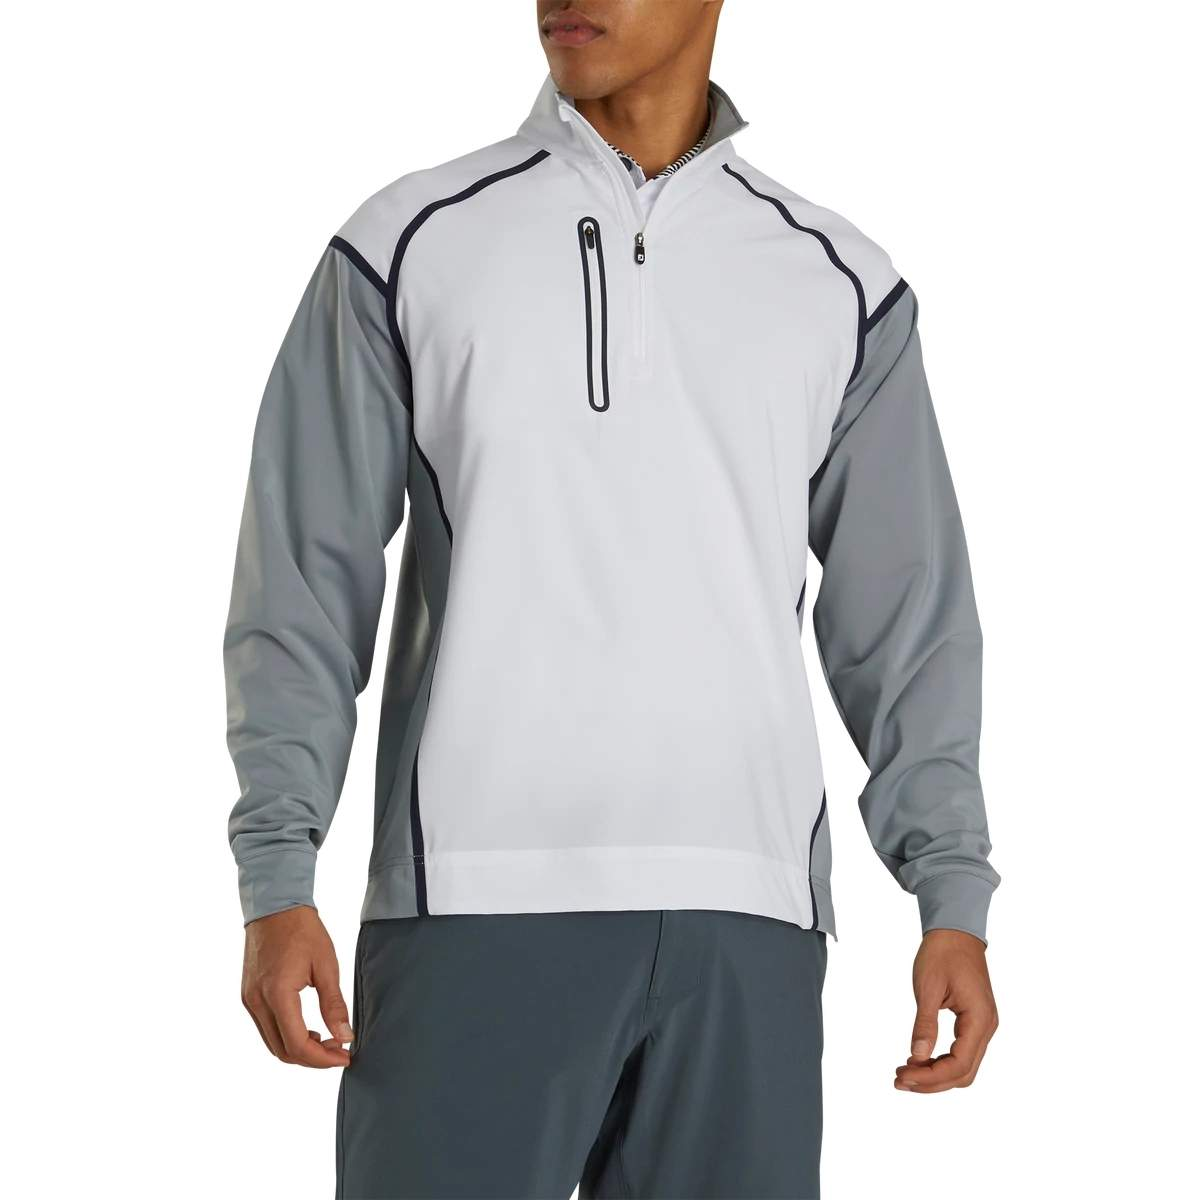 FootJoy Men's White Wind Tech Pullover